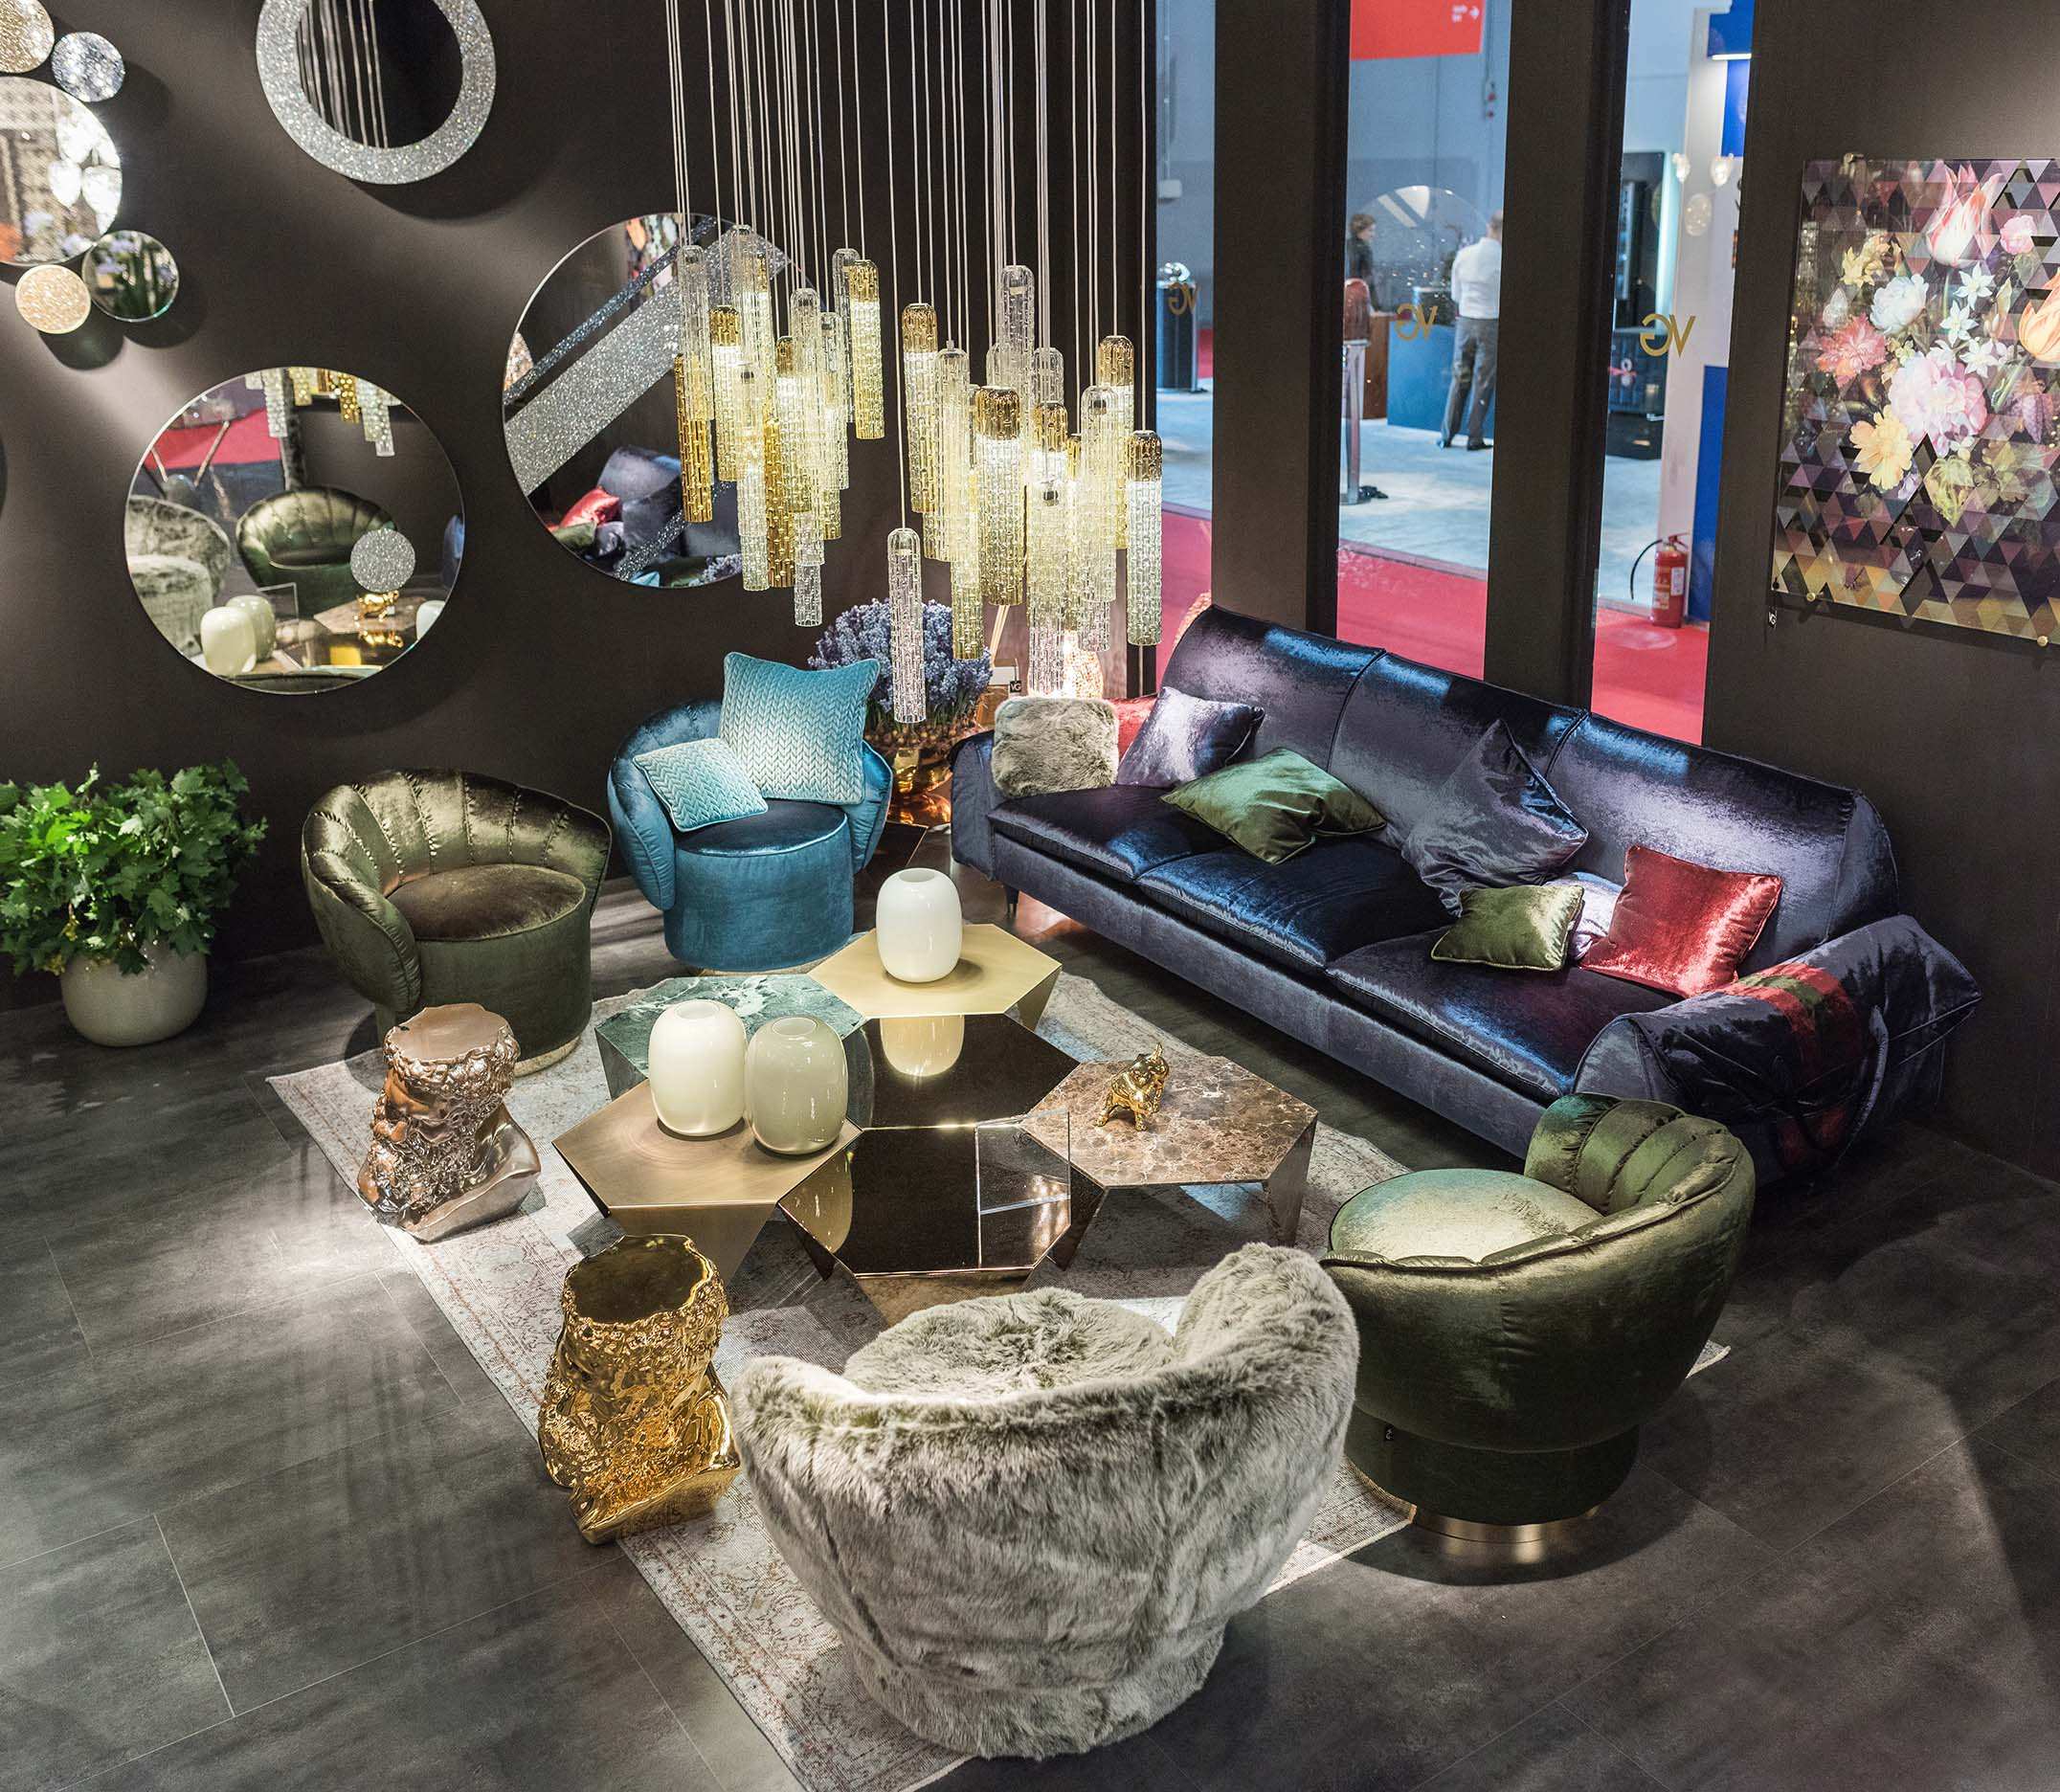 VG New Trend at Salone del Mobile via Masha Shapiro Agency UK.jpg